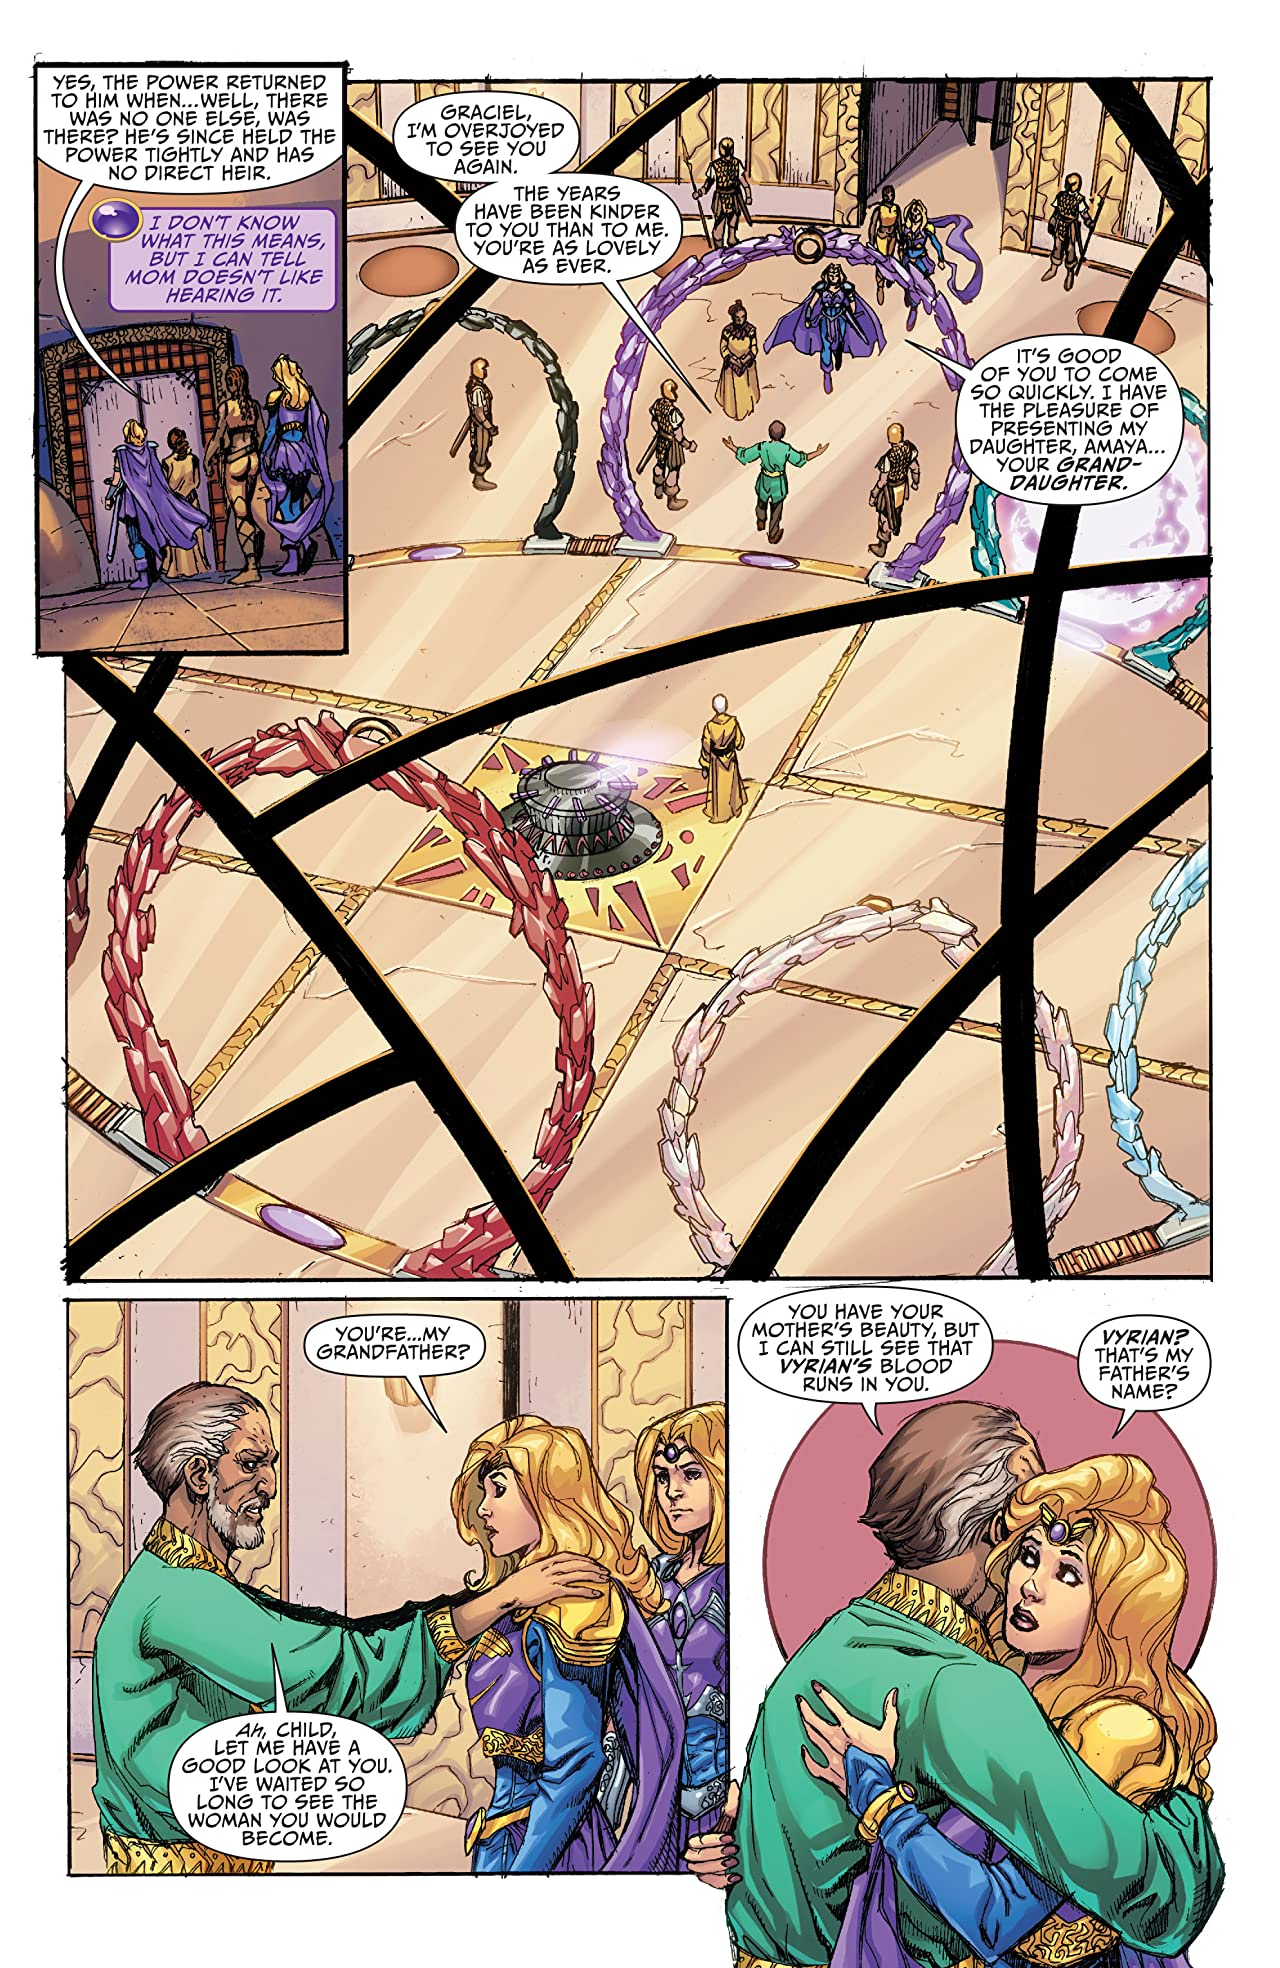 Sword of Sorcery (2012-2013) #2